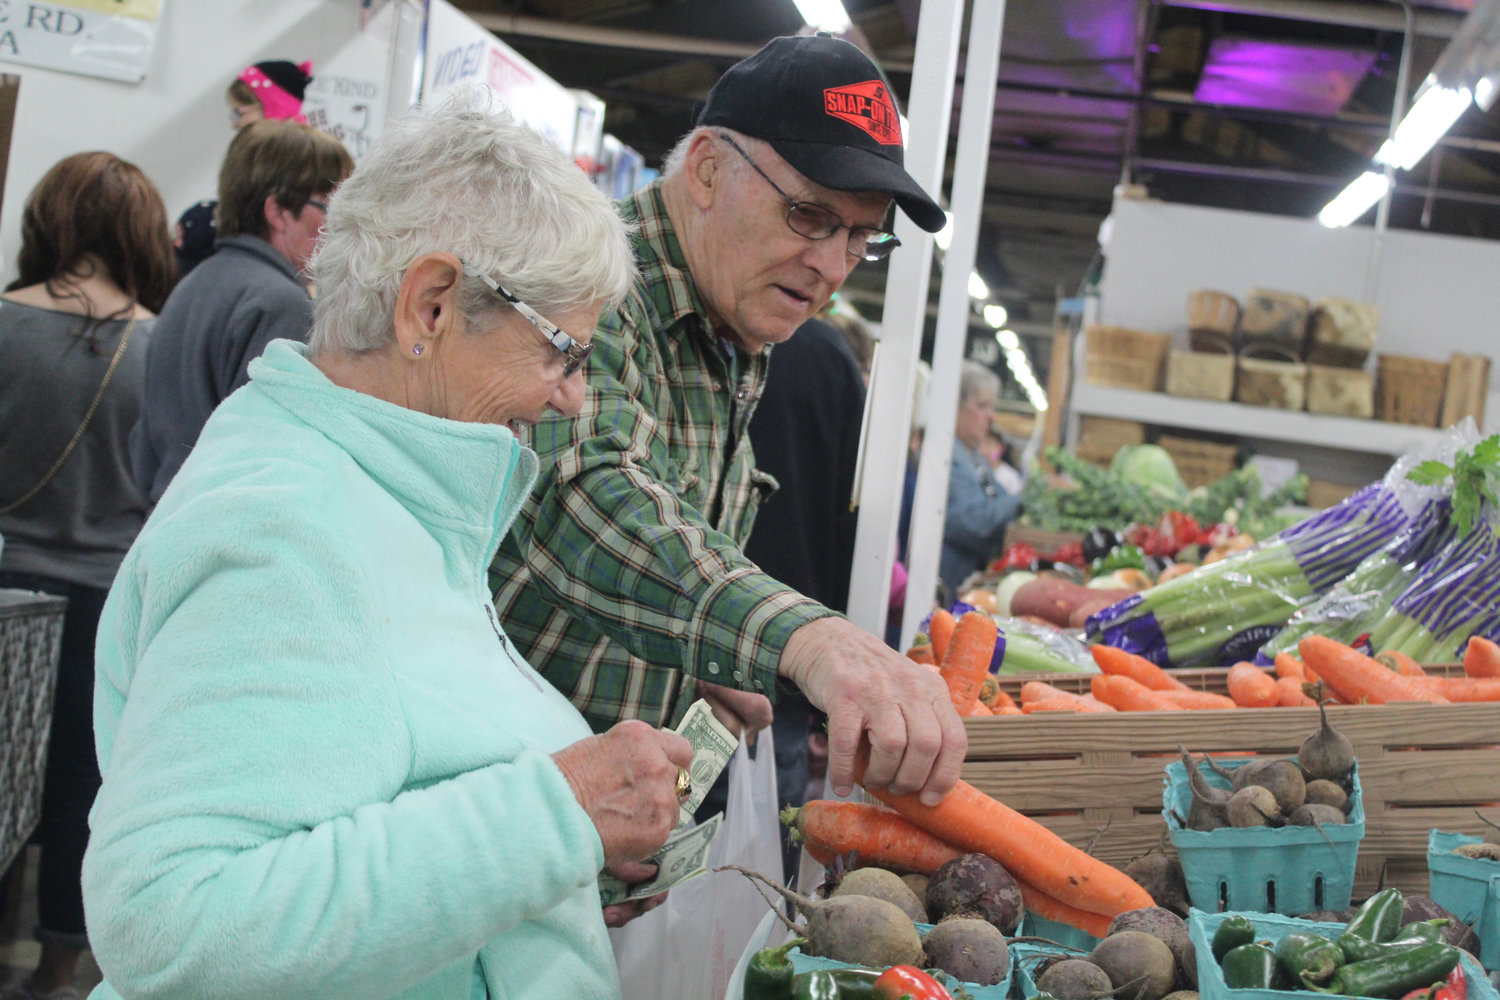 George and Joyce Whire purchase produce at a stall at Saturday's Market Oct. 12.